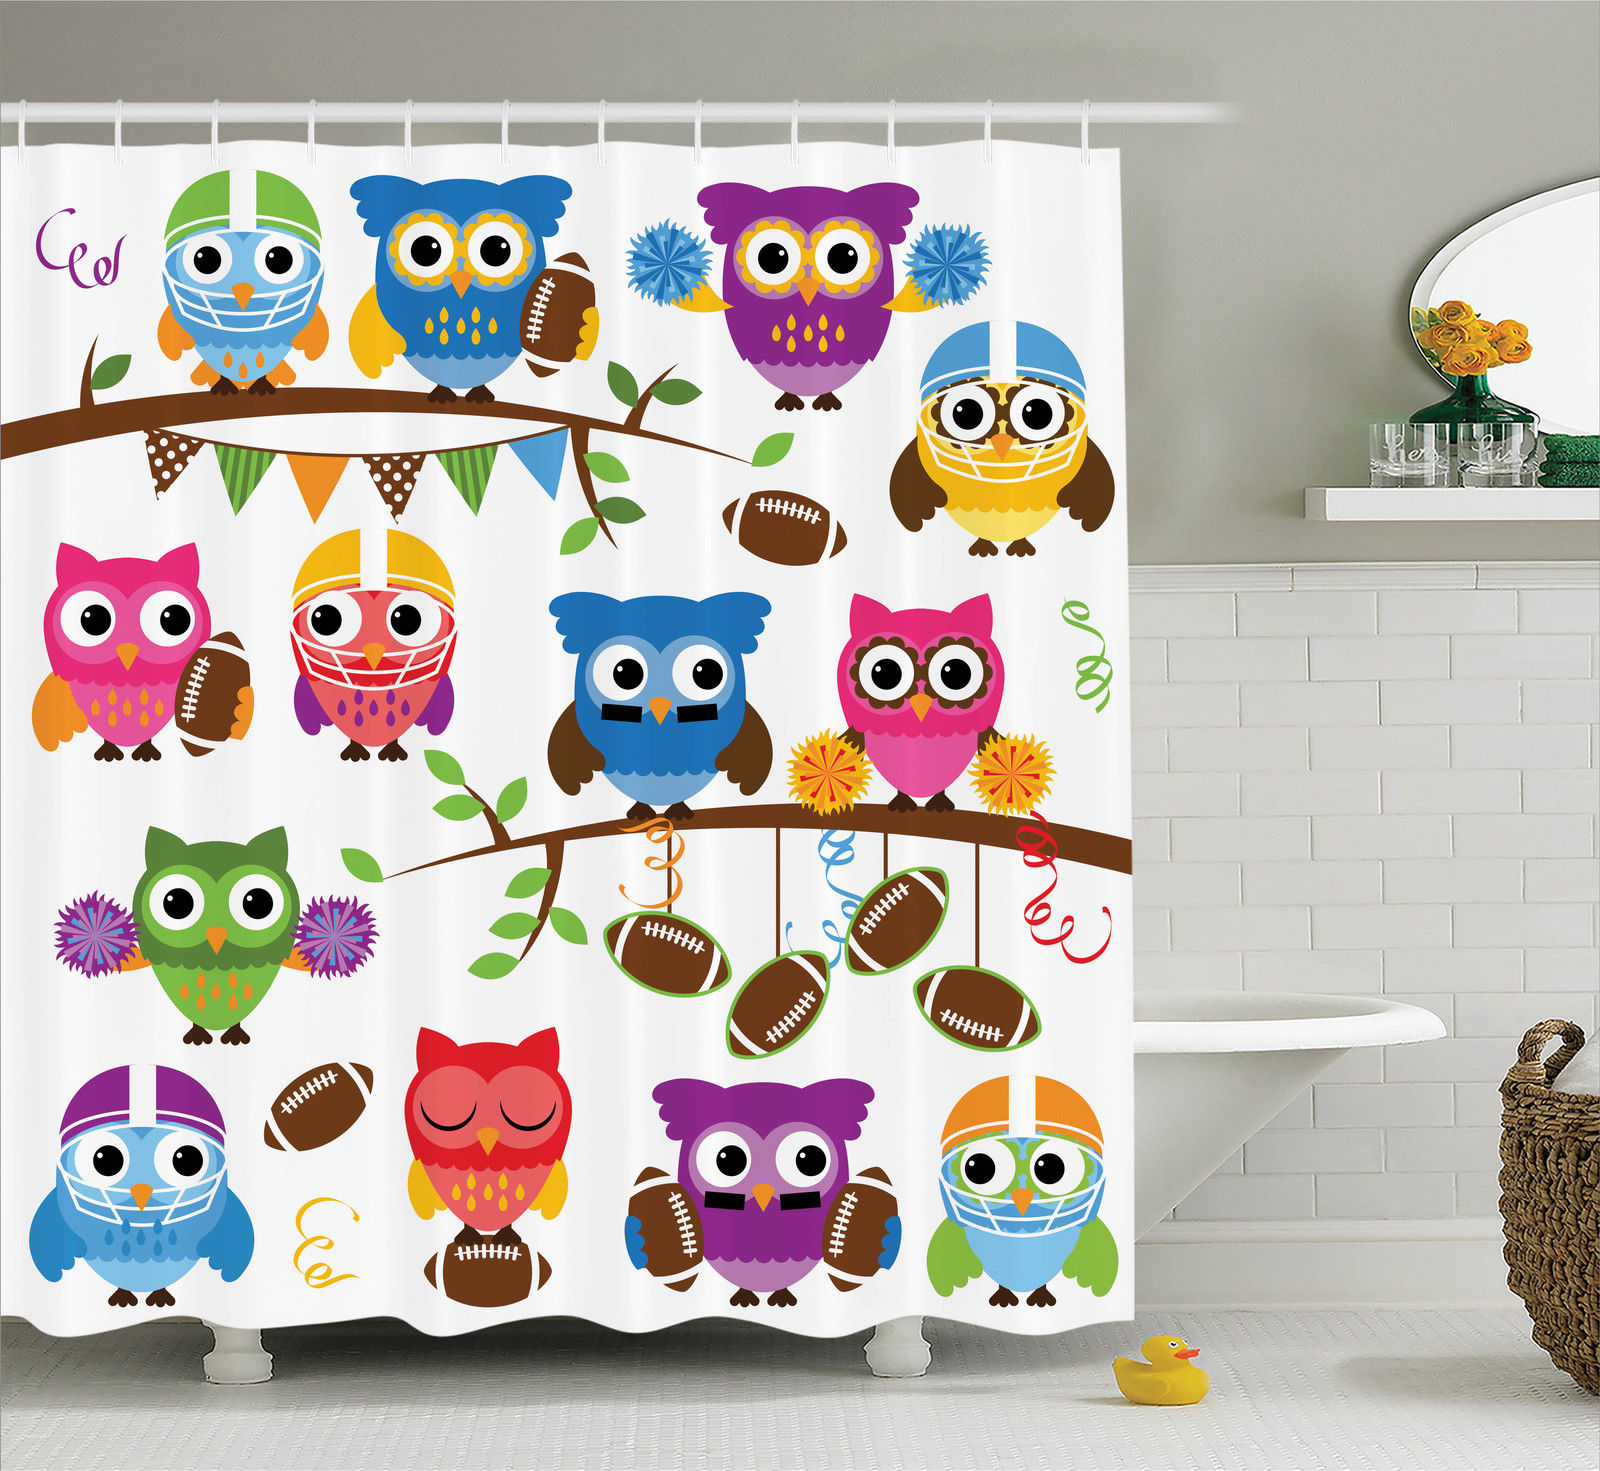 Owls Home Decor Shower Curtain Set, Sporty Owls Cheerleader League Team Helmet Coach Football Sports Themed Art, Bathroom Accessories, 69W X 70L Inches, By Ambesonne